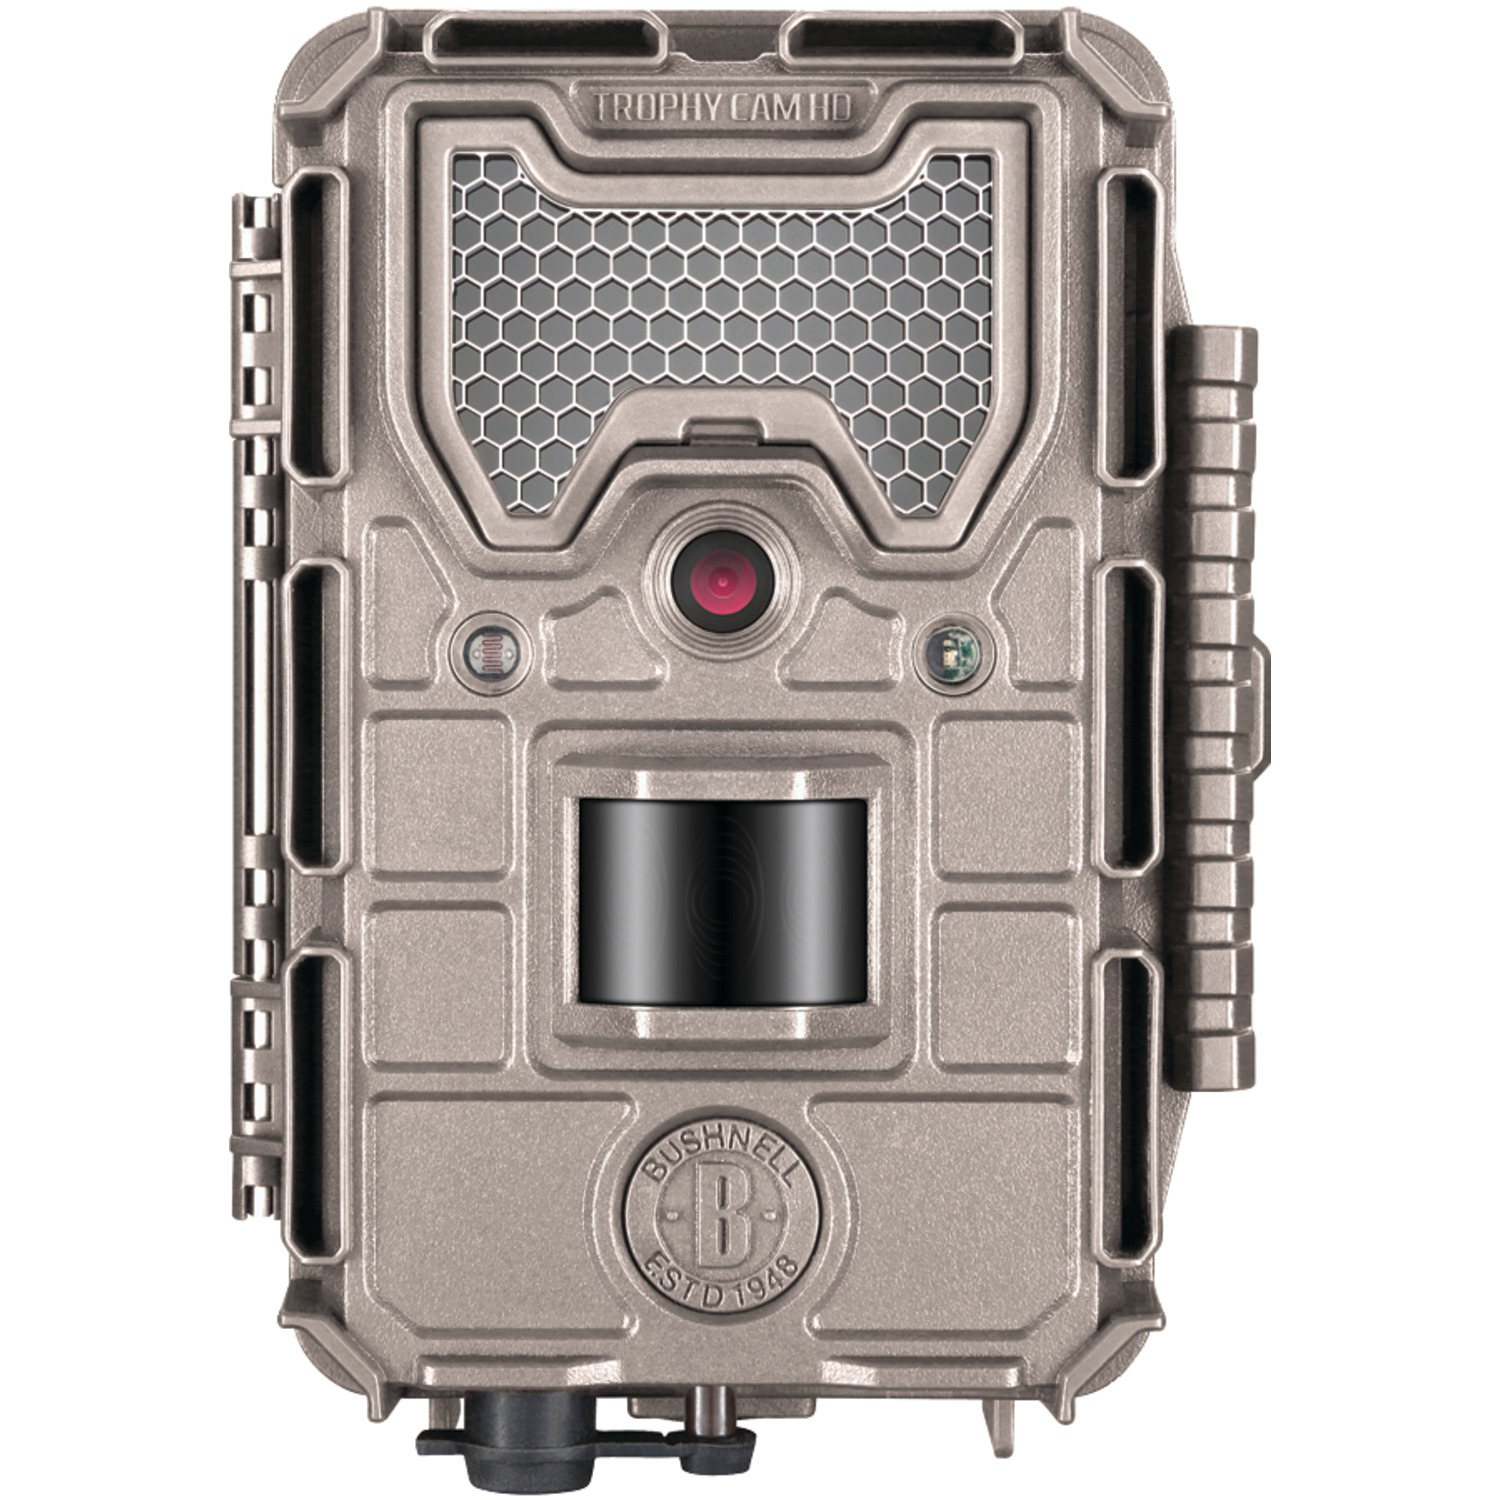 Bushnell Trophy Cam HD Agressor 20MP Hunting Trail Game Camera - 119876C